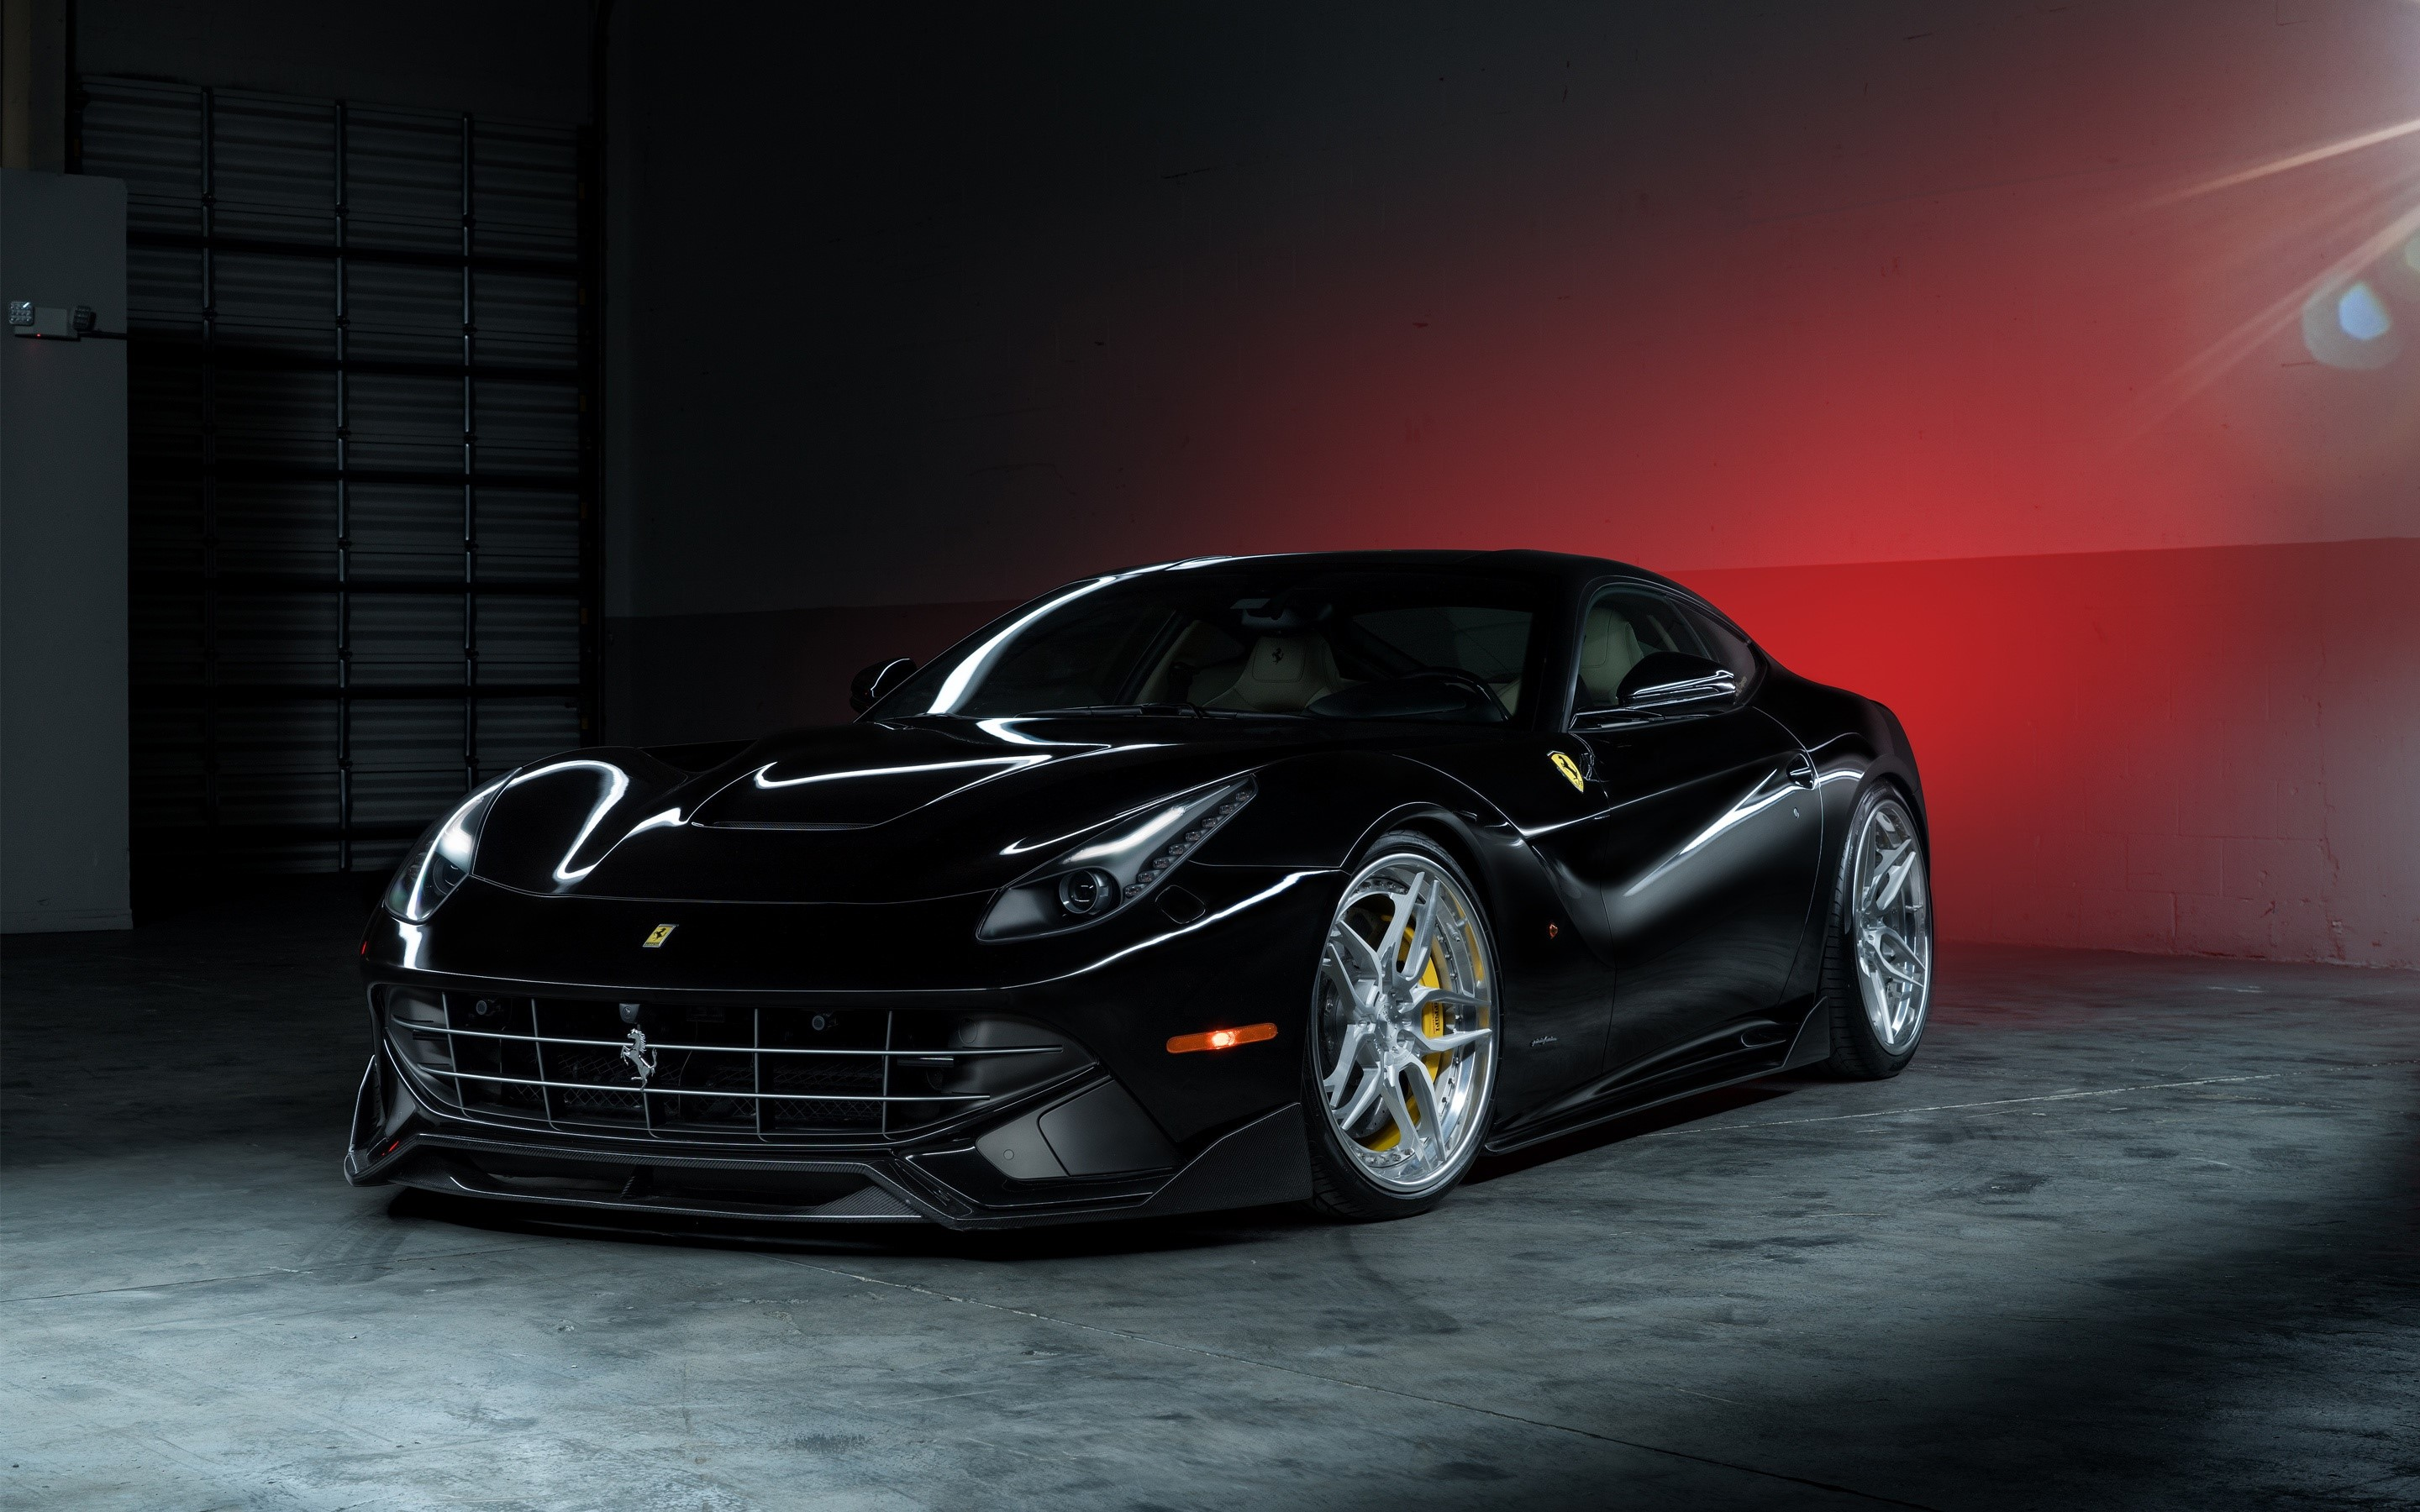 Wallpaper Ferrari F12 berlinetta